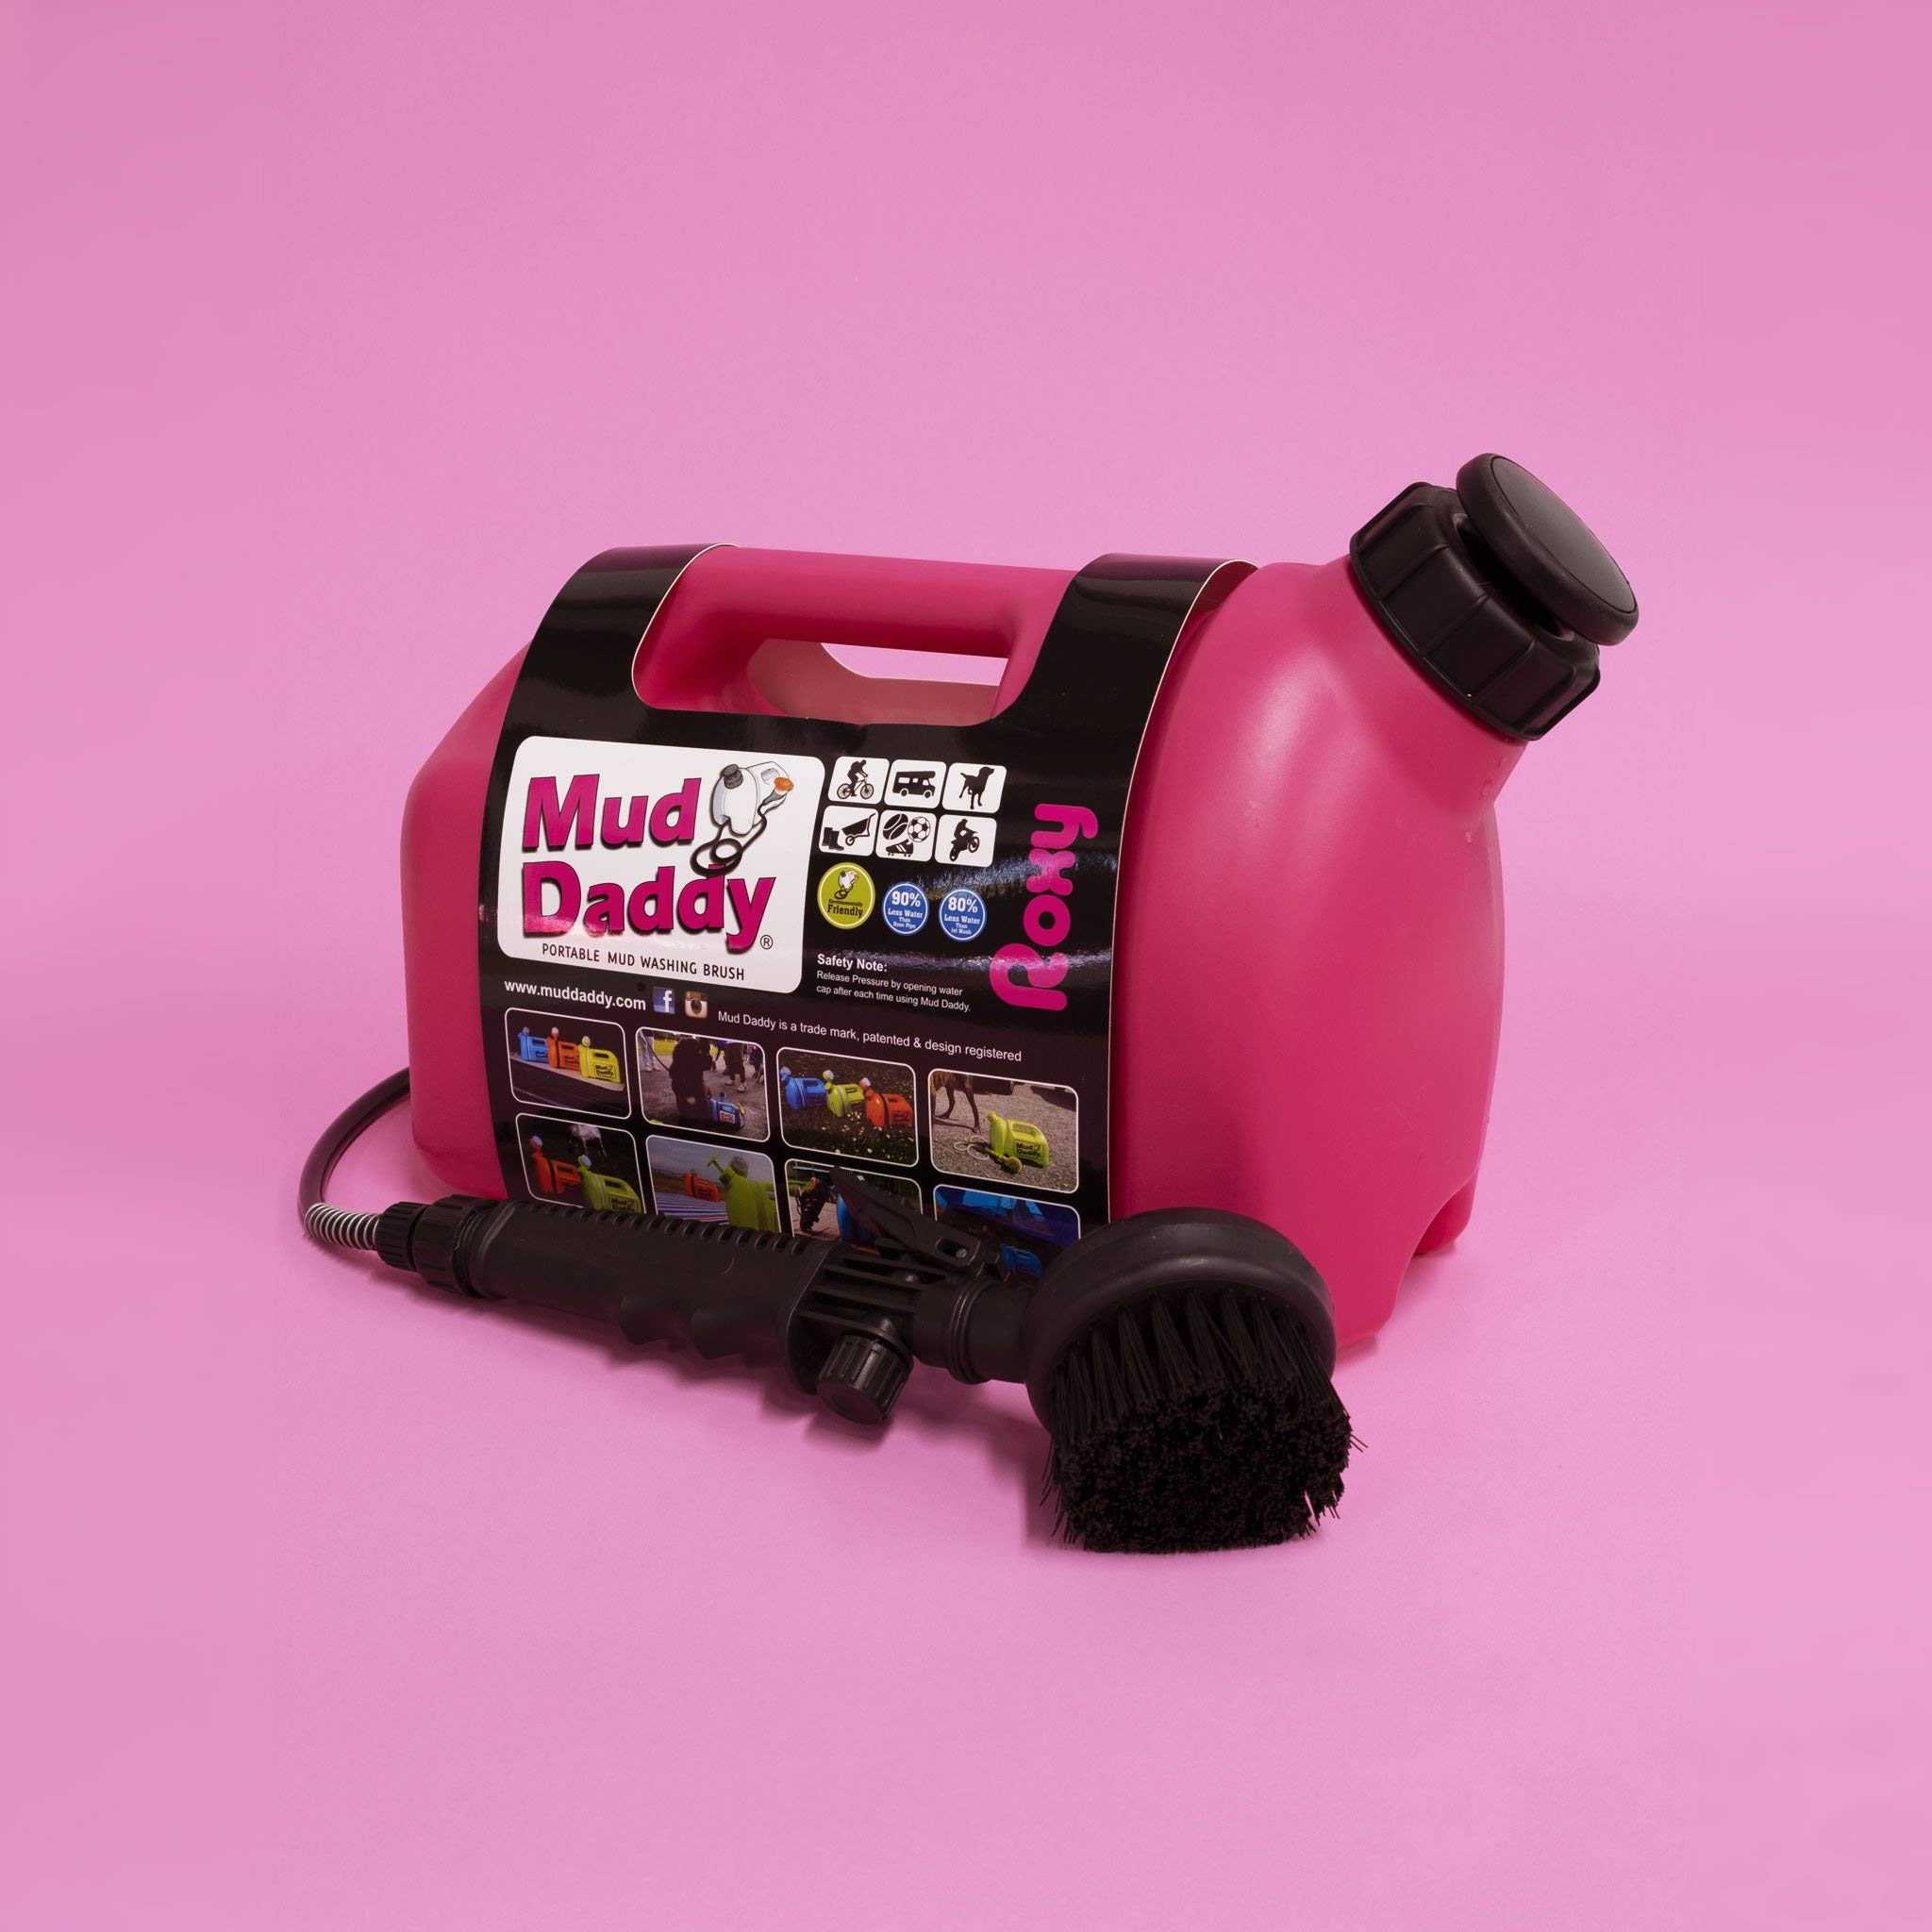 Mud Daddy Portable Washing Device for Dogs, Horses, Outdoor & Camping, Bikes (Pink) by Mud Daddy